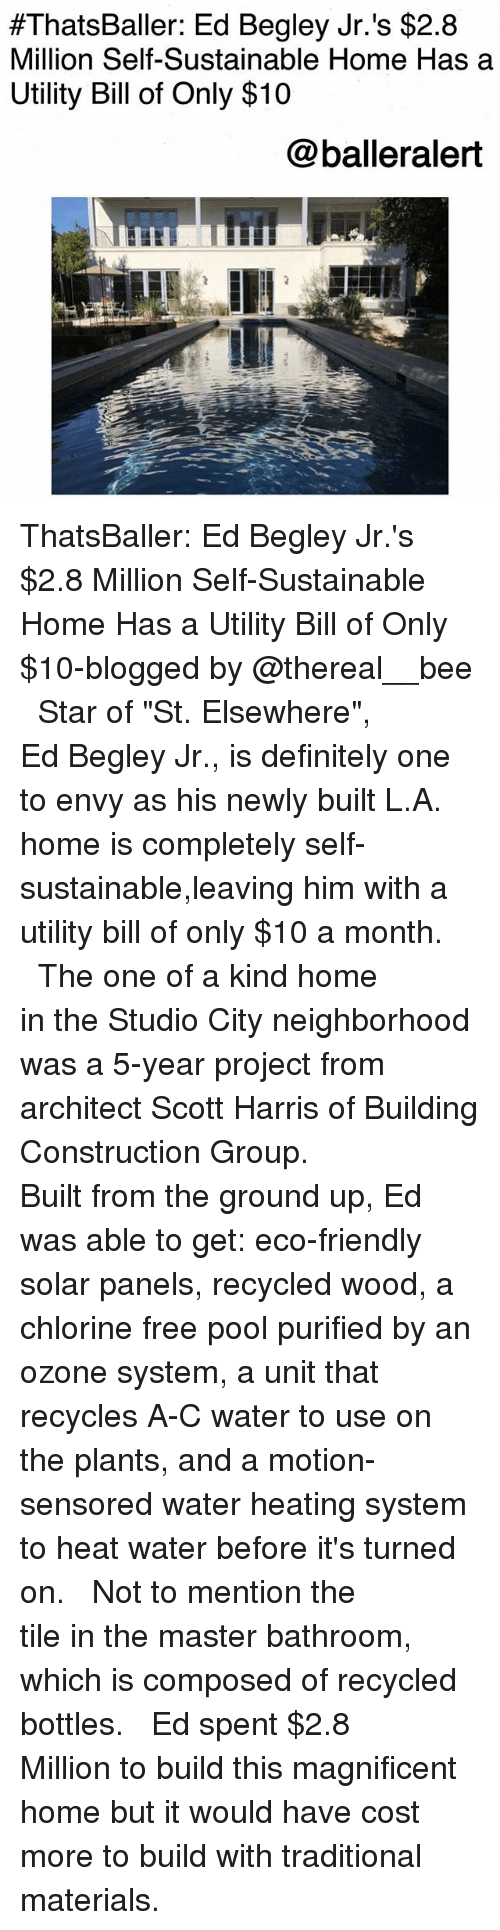 """Definitely, Memes, and Free:  #ThatsBaller: Ed Begley Jr. 's $2.8  Million Self-Sustainable Home Has a  Utility Bill of Only $10  @balleralert ThatsBaller: Ed Begley Jr.'s $2.8 Million Self-Sustainable Home Has a Utility Bill of Only $10-blogged by @thereal__bee ⠀⠀⠀⠀⠀⠀⠀⠀⠀ ⠀⠀ Star of """"St. Elsewhere"""", Ed Begley Jr., is definitely one to envy as his newly built L.A. home is completely self-sustainable,leaving him with a utility bill of only $10 a month. ⠀⠀⠀⠀⠀⠀⠀⠀⠀ ⠀⠀ The one of a kind home in the Studio City neighborhood was a 5-year project from architect Scott Harris of Building Construction Group. ⠀⠀⠀⠀⠀⠀⠀⠀⠀ ⠀⠀ Built from the ground up, Ed was able to get: eco-friendly solar panels, recycled wood, a chlorine free pool purified by an ozone system, a unit that recycles A-C water to use on the plants, and a motion-sensored water heating system to heat water before it's turned on. ⠀⠀⠀⠀⠀⠀⠀⠀⠀ ⠀⠀ Not to mention the tile in the master bathroom, which is composed of recycled bottles. ⠀⠀⠀⠀⠀⠀⠀⠀⠀ ⠀⠀ Ed spent $2.8 Million to build this magnificent home but it would have cost more to build with traditional materials."""